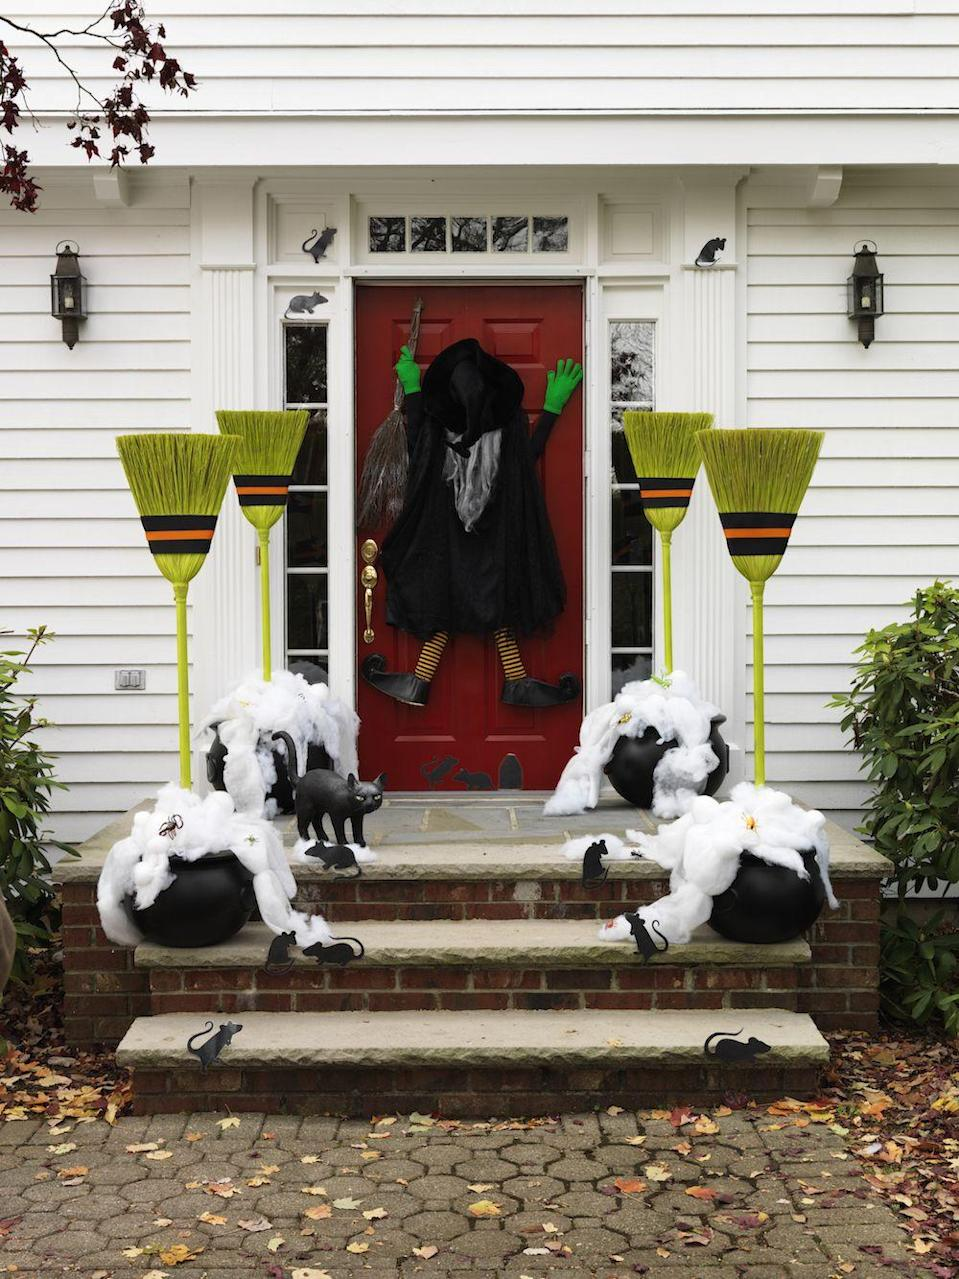 """<p>If you're partial to witch costumes, stay on theme by decorating your front door with one. Make even more of an impact by adding a few broomsticks to the arrangement. </p><p><a class=""""link rapid-noclick-resp"""" href=""""https://go.redirectingat.com?id=74968X1596630&url=https%3A%2F%2Fwww.wayfair.com%2Foutdoor%2Fpdp%2Fthe-holiday-aisle-crashing-witch-wilma-wipeout-figurine-w000086961.html&sref=https%3A%2F%2Fwww.goodhousekeeping.com%2Fholidays%2Fhalloween-ideas%2Fg32948621%2Fhalloween-door-decorations%2F"""" rel=""""nofollow noopener"""" target=""""_blank"""" data-ylk=""""slk:SHOP WITCH"""">SHOP WITCH</a></p>"""